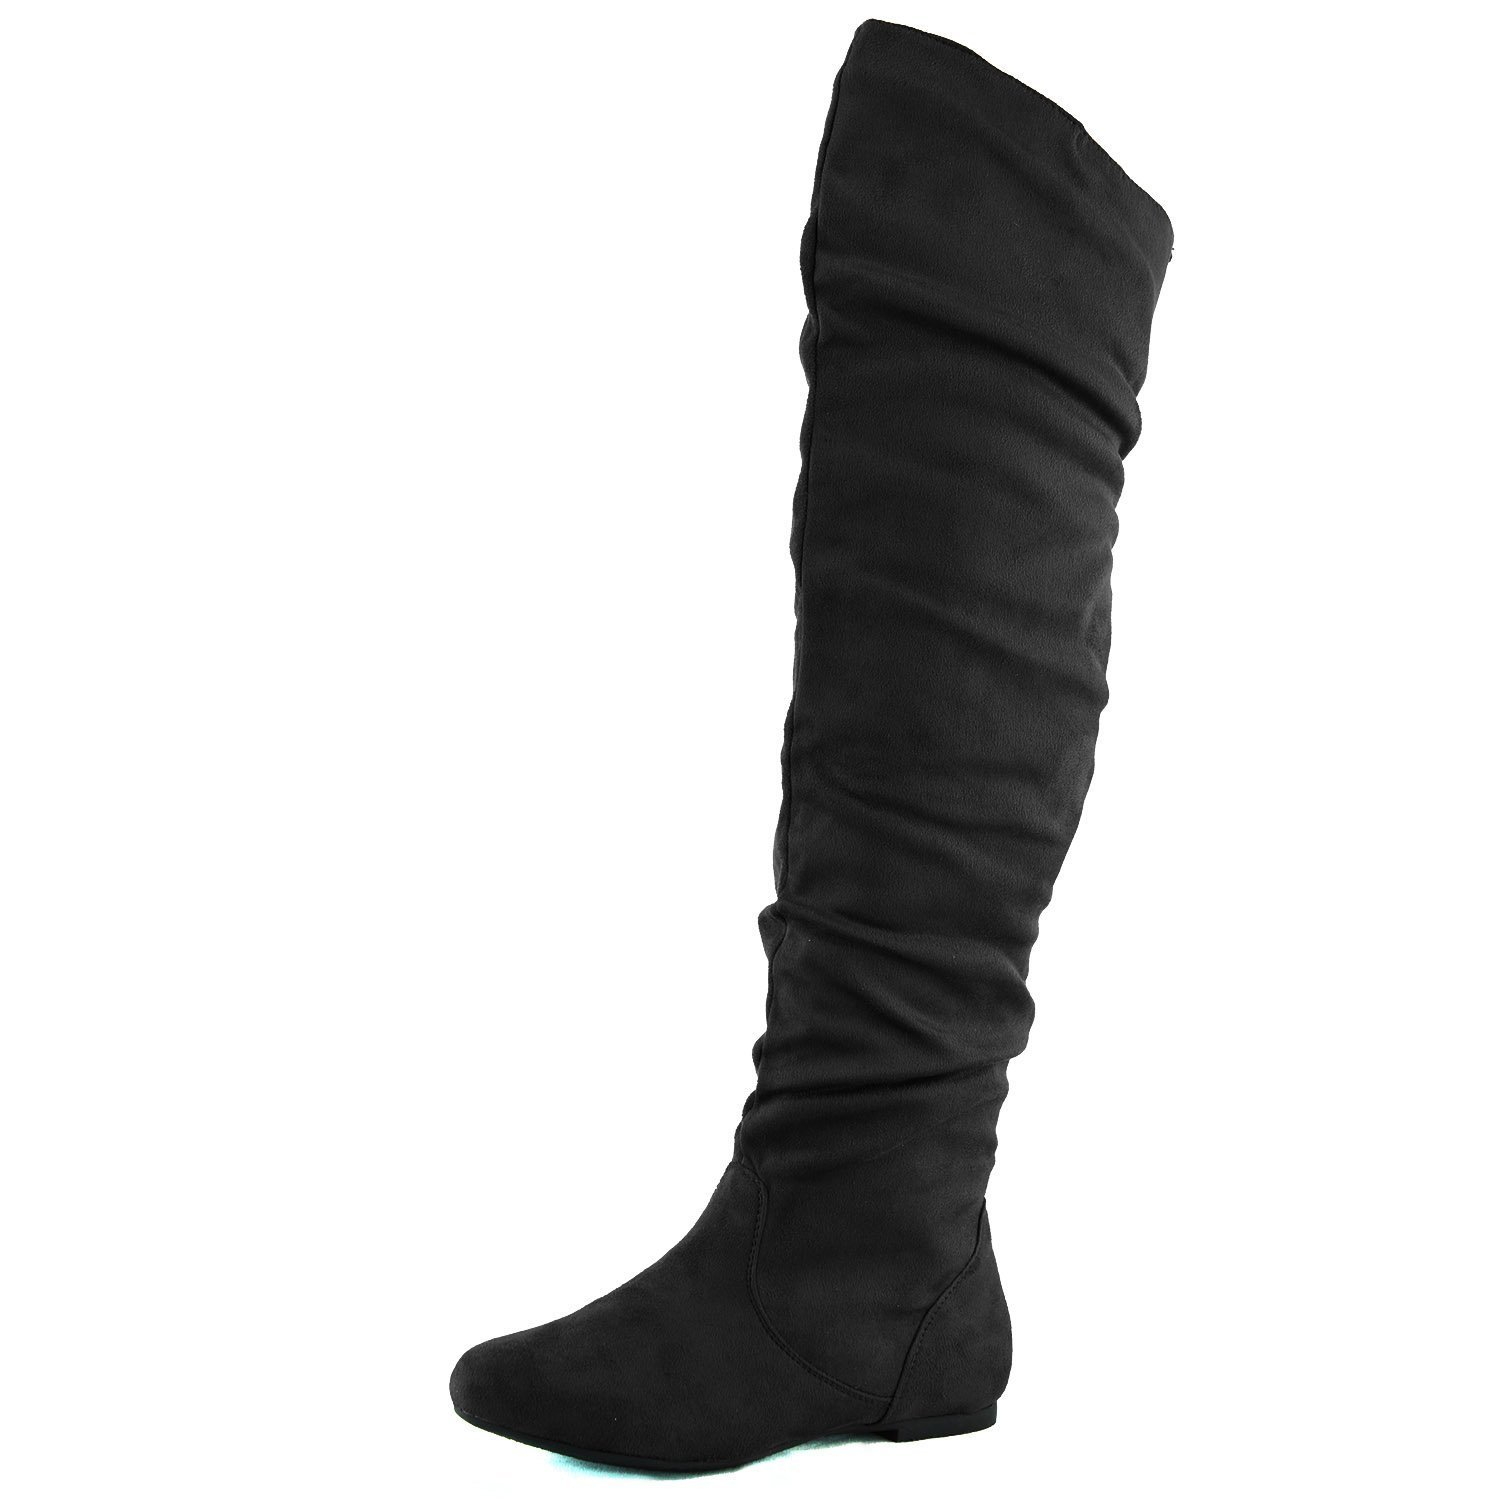 98c9bbd12bed1 Women's Over The Knee Slouchy Flat Boots Knee High Low Heel Shoes Thigh  High Boots